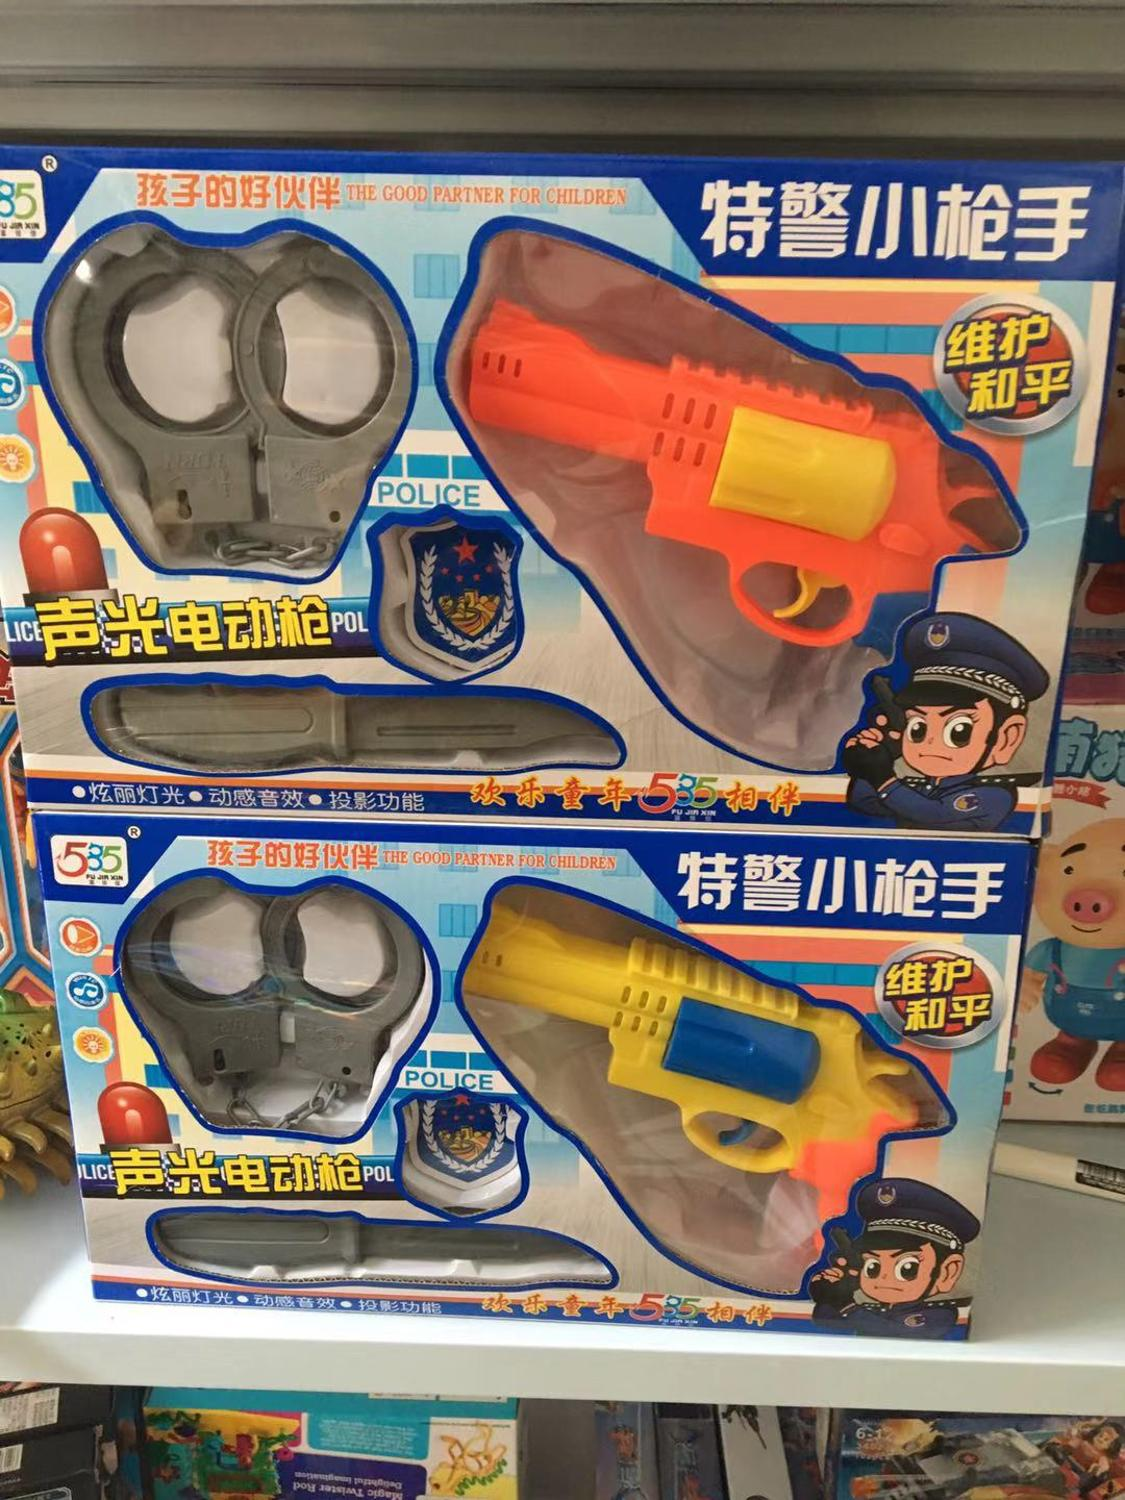 Police Handcuffs Toy Sound  Light Gun Pistol Set Pretend Play Hand Cuffs Child Fancy Officer Costume Role Play Game Educational